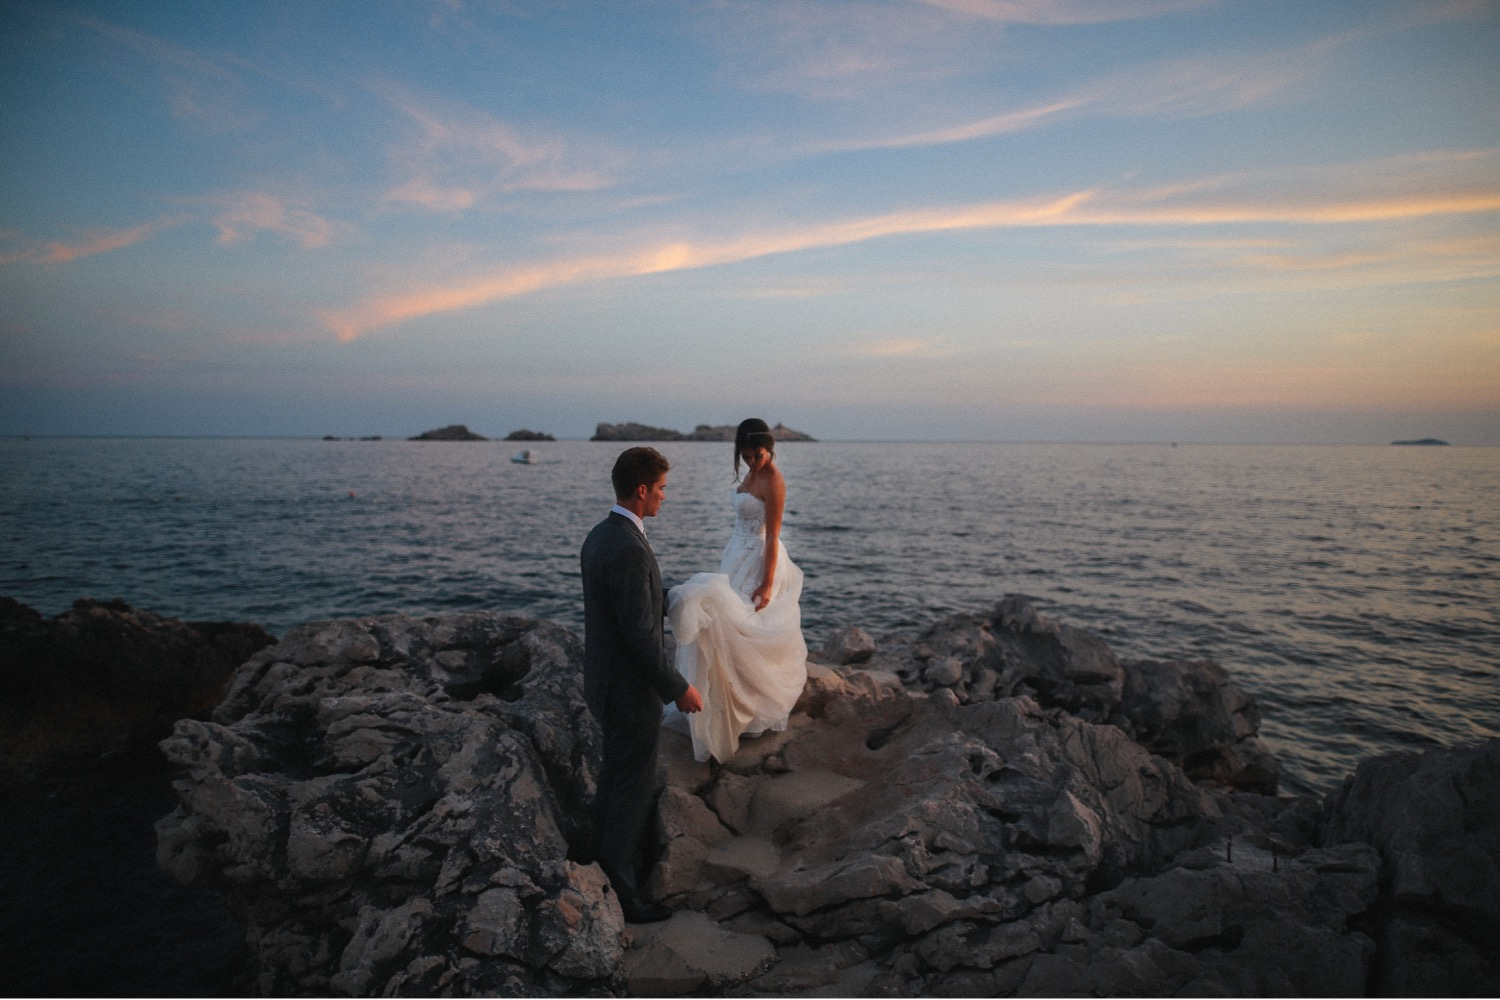 intimate destination wedding dubrovnik jasmina matthew love and ventures photography 32 | Croatia Elopement Photographer and Videographer